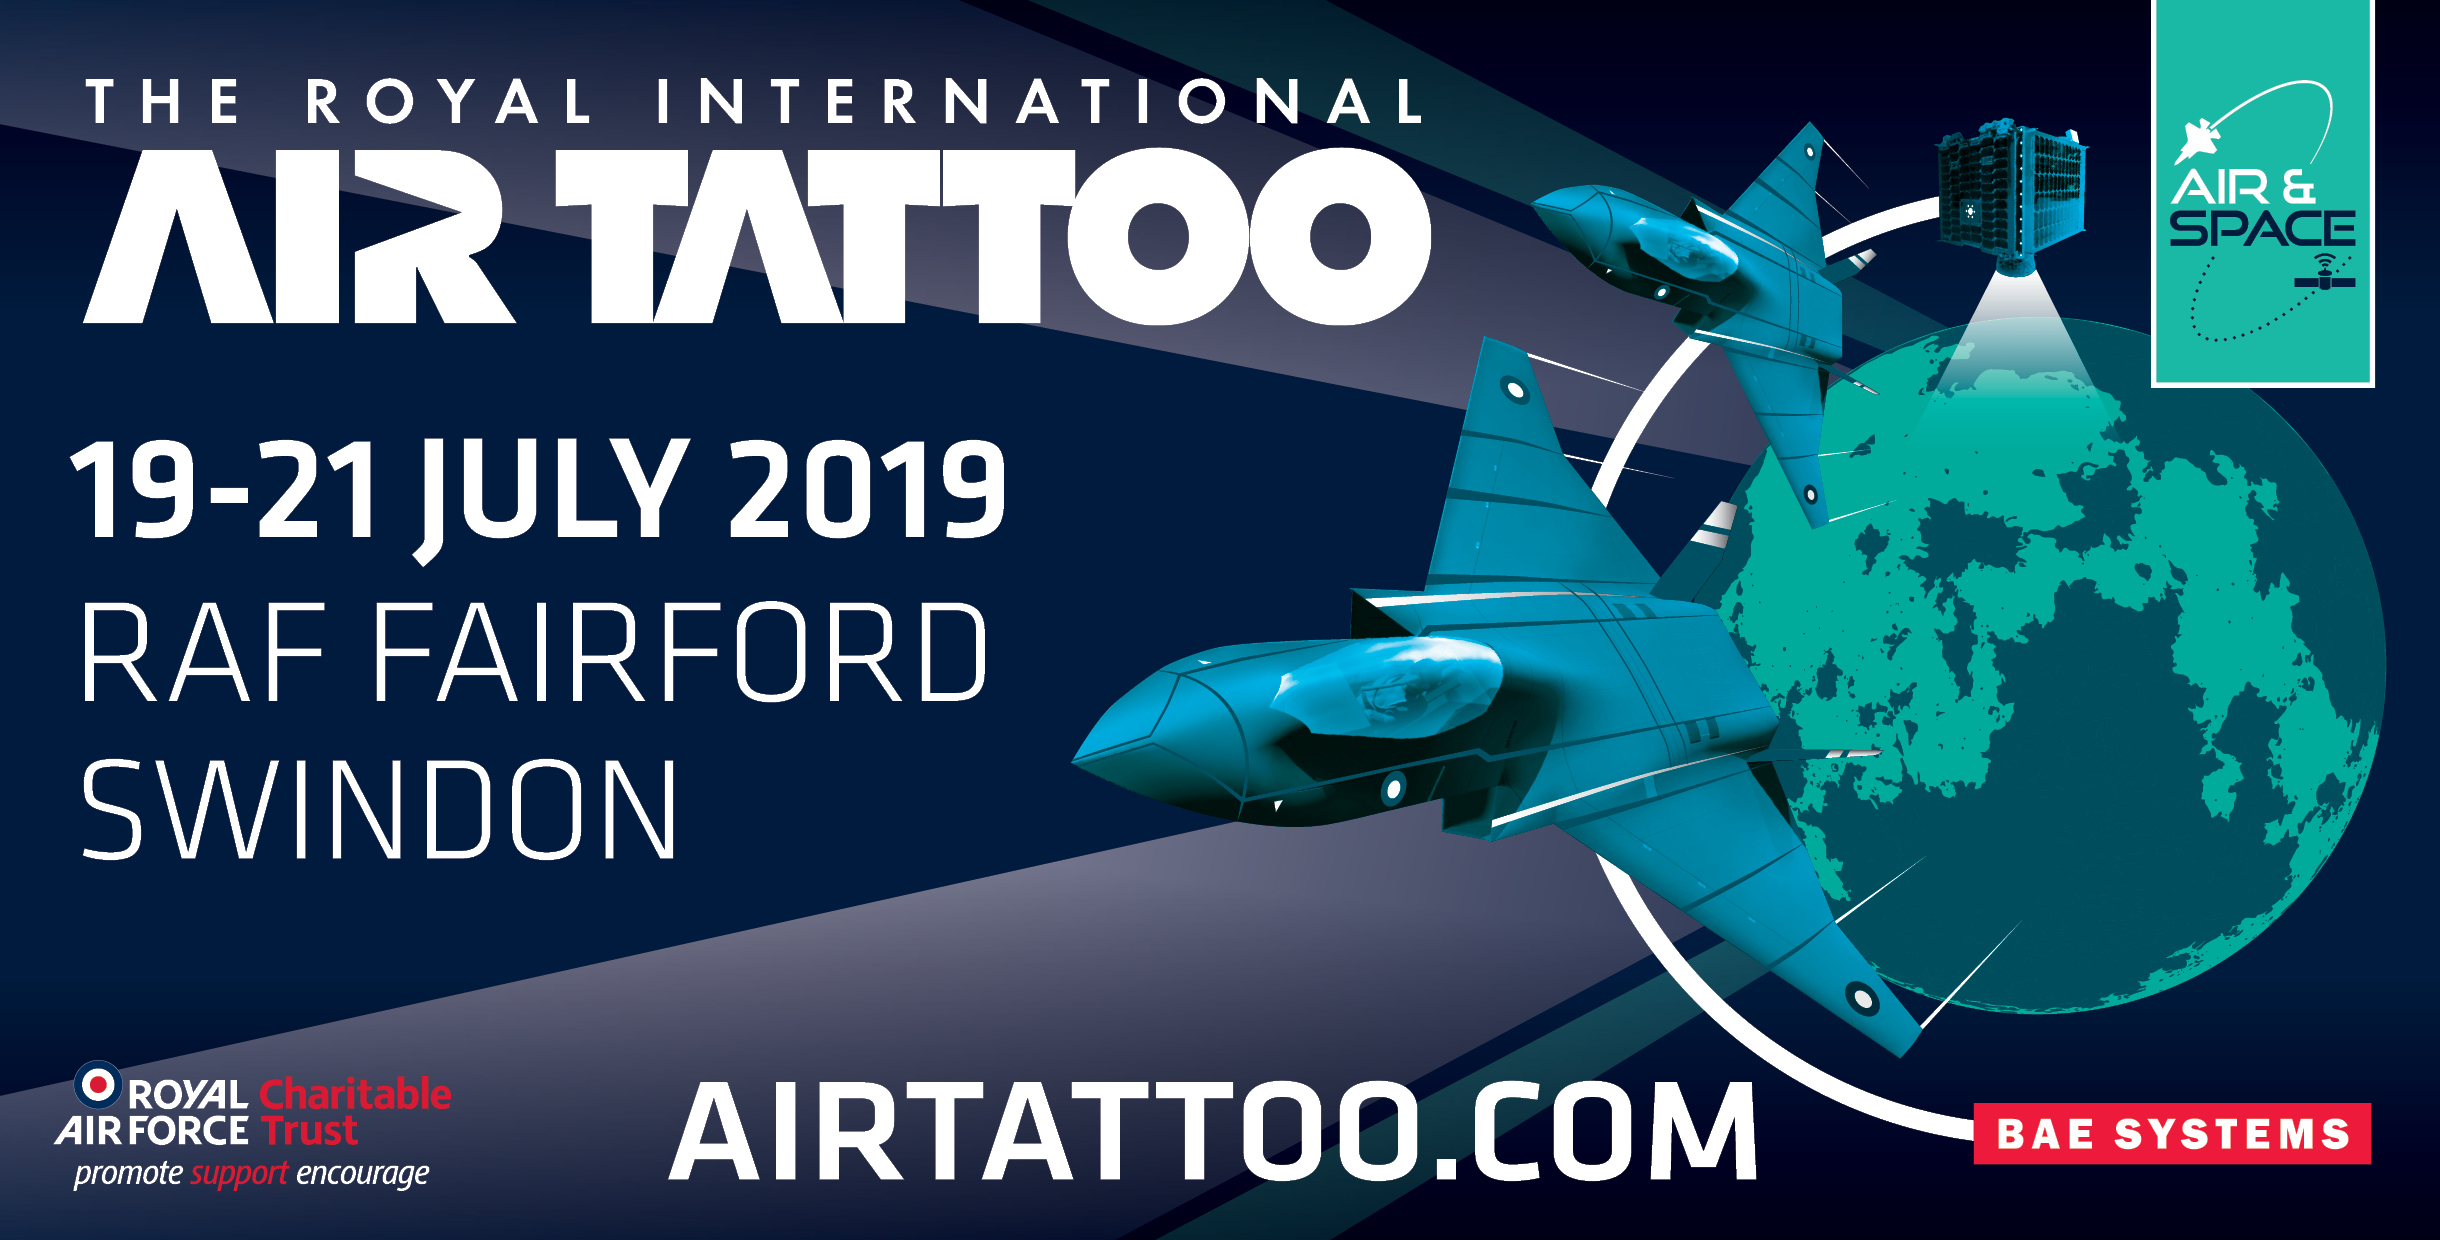 Royal International Air Tattoo – 19-21 July 2019